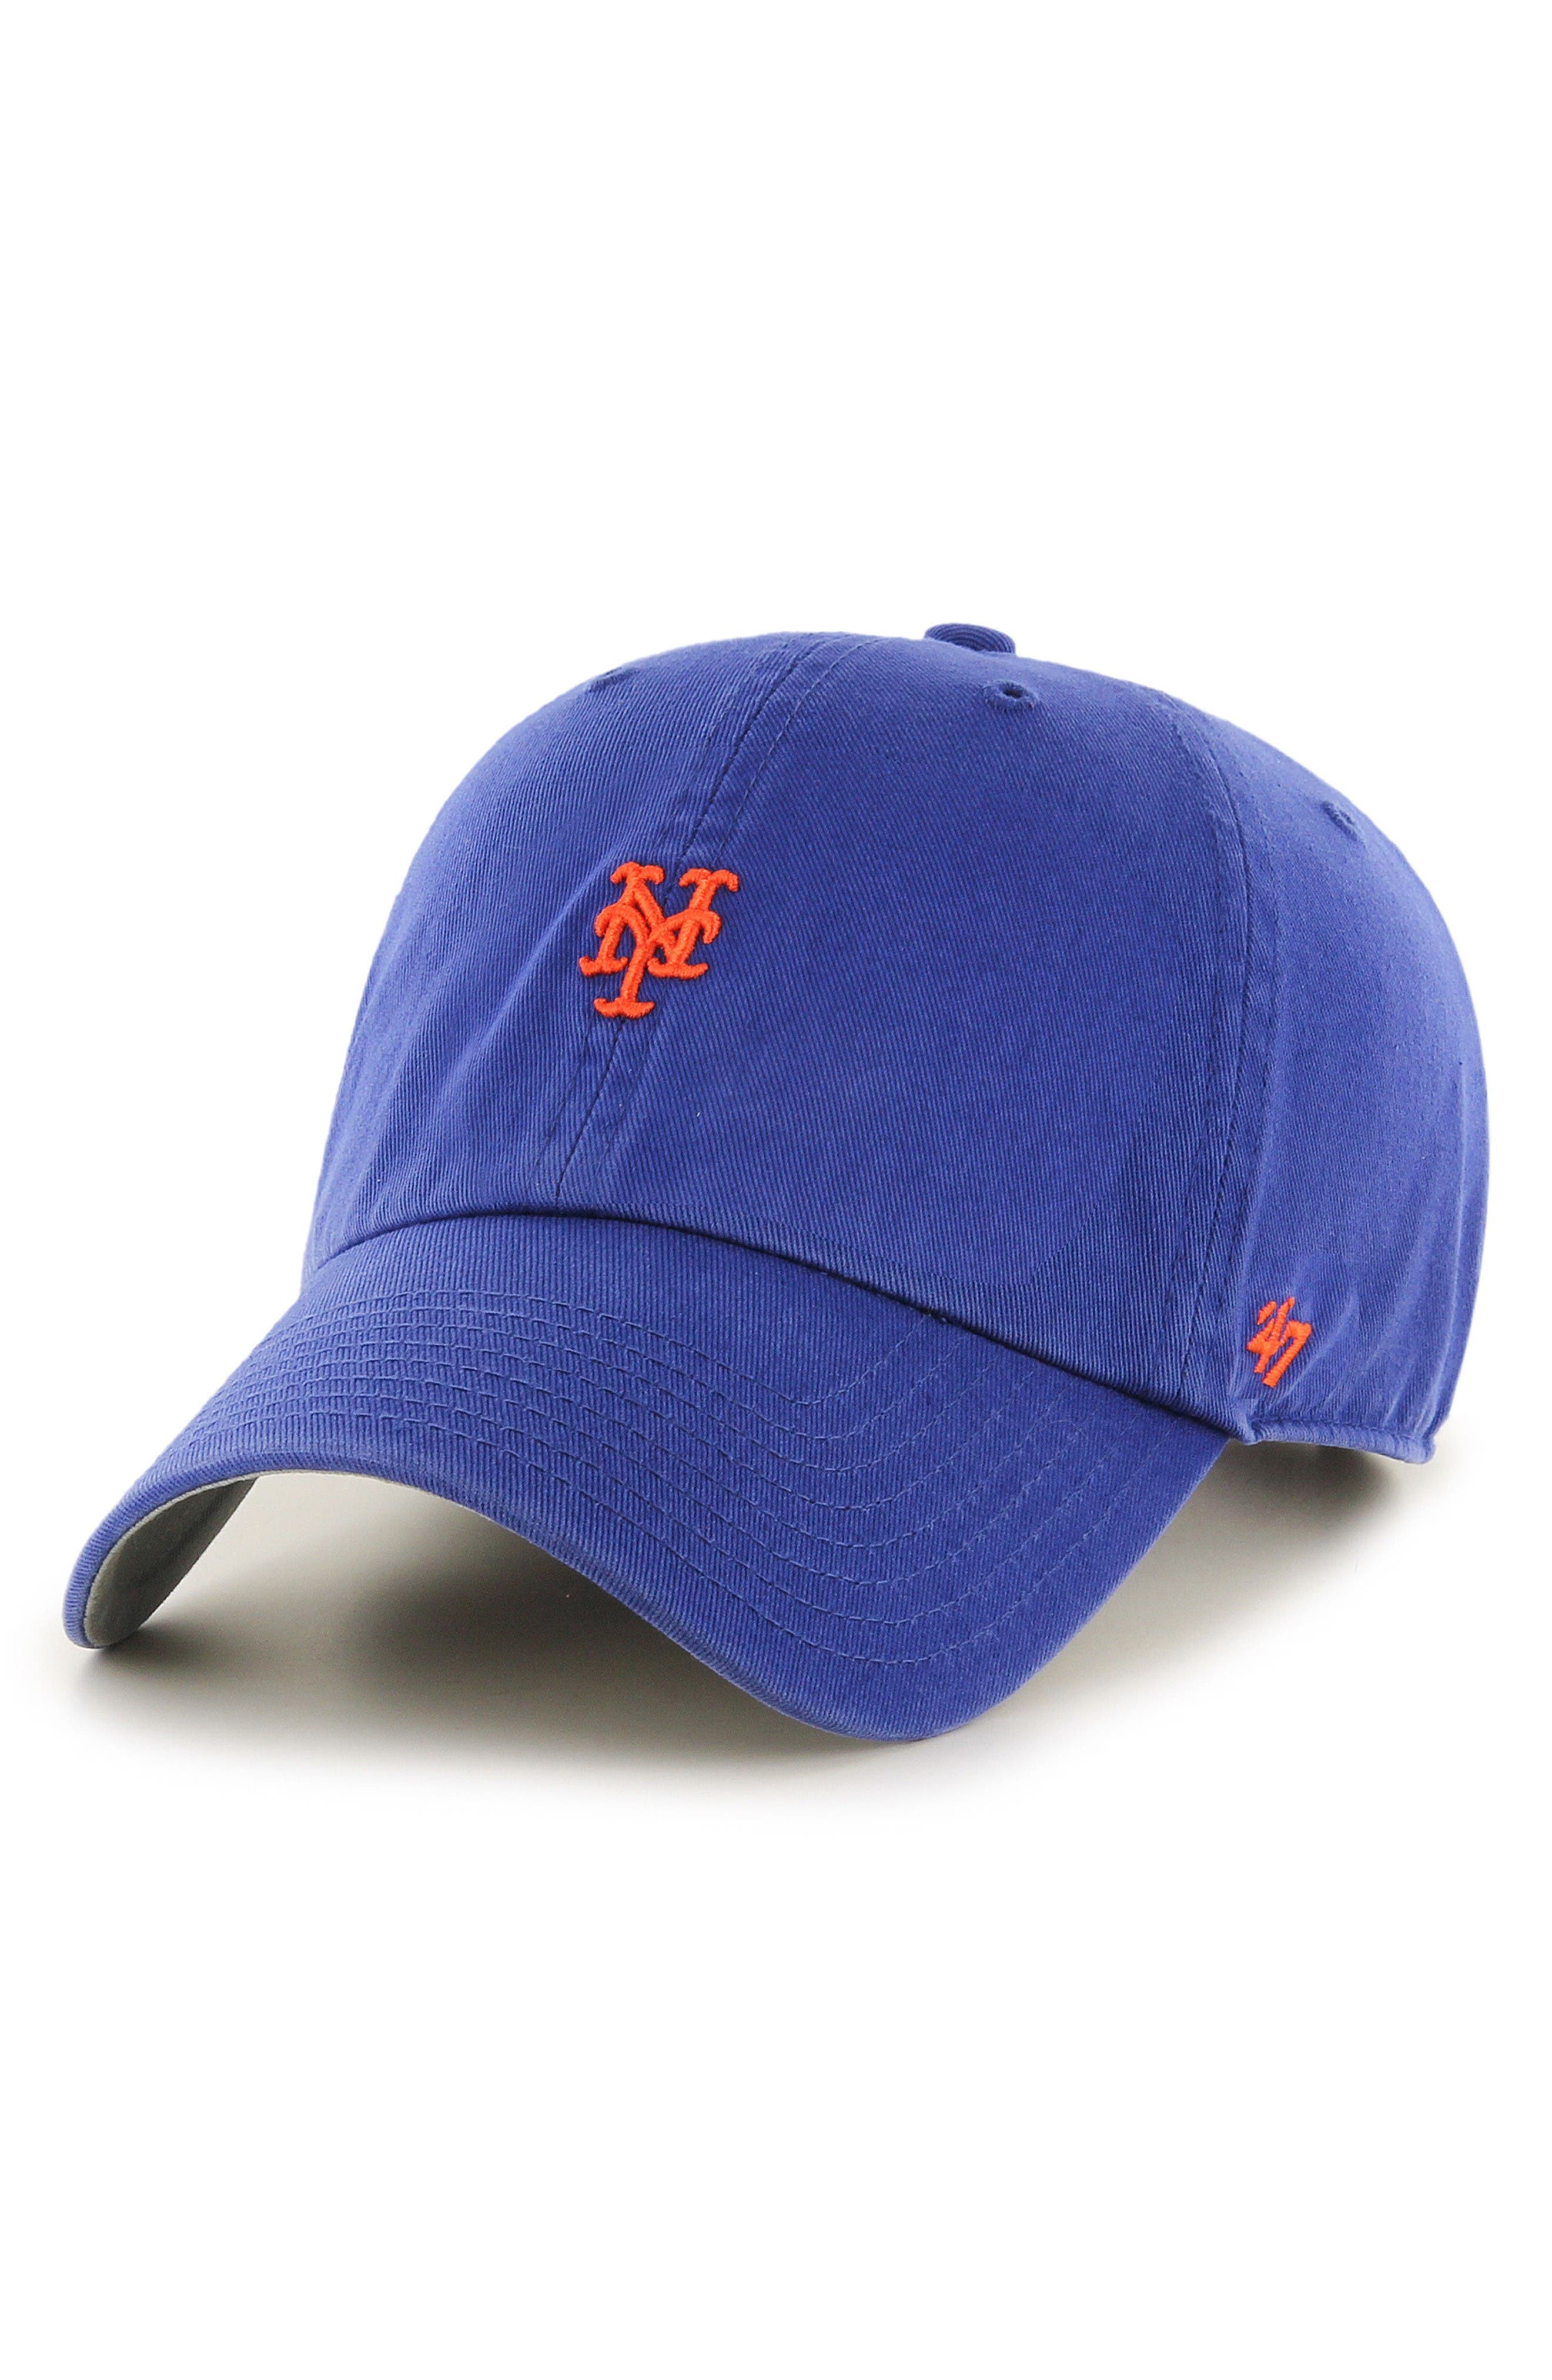 Alternate Image 1 Selected - '47 Clean Up NY Mets Baseball Cap